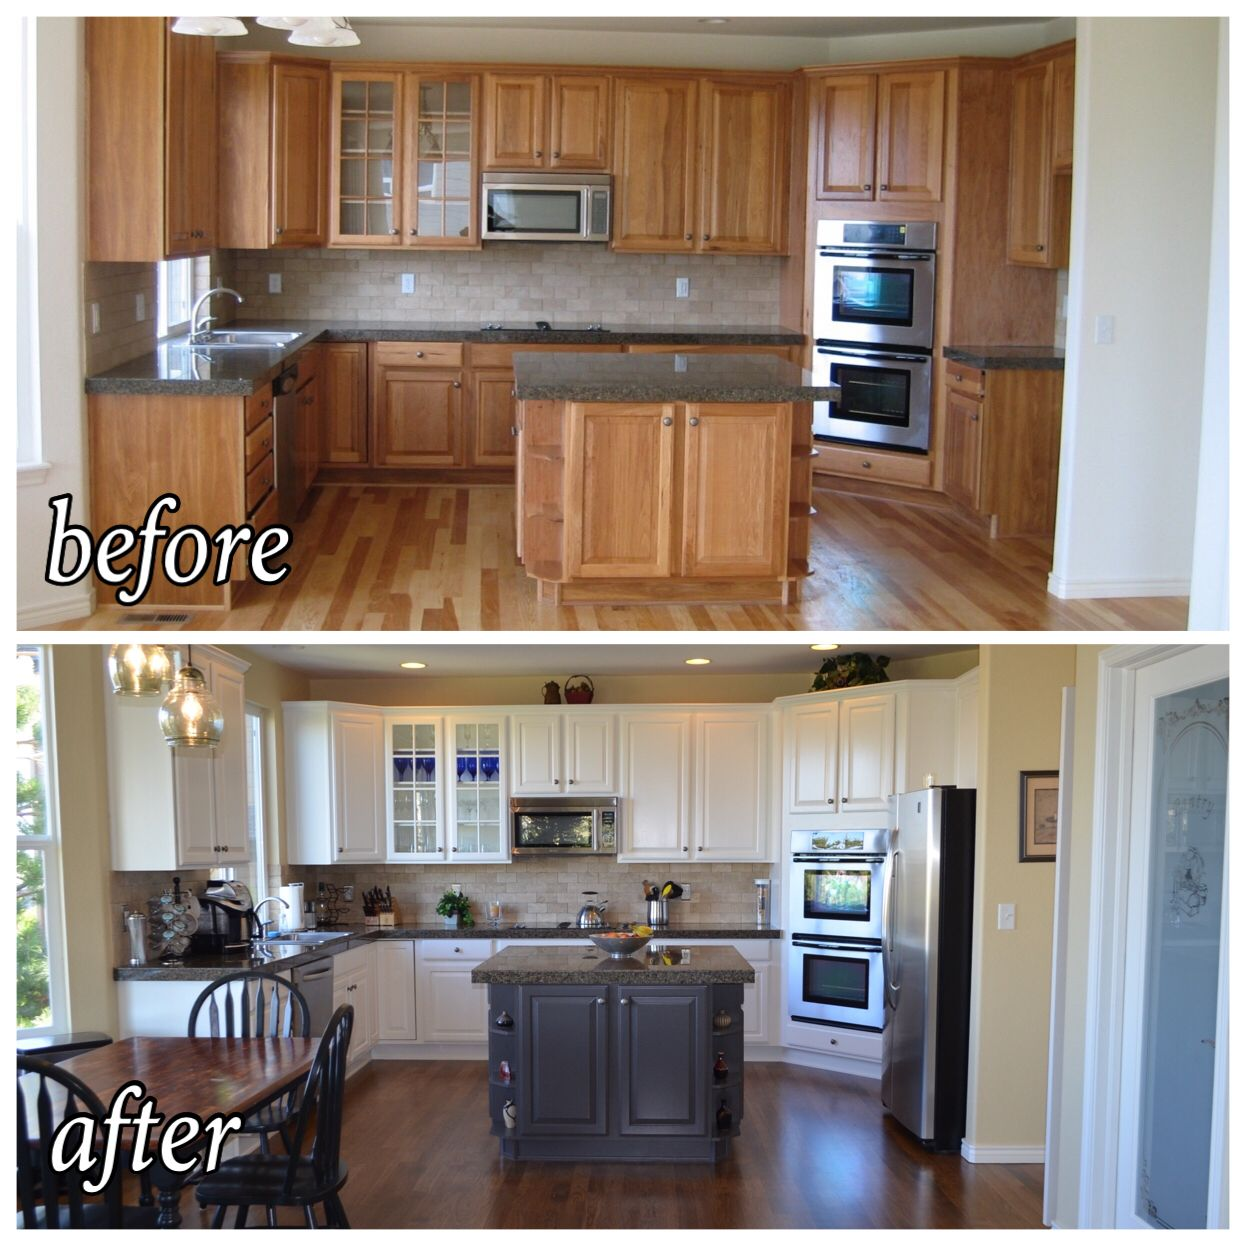 Before After Of Kitchen Update Painted Cabinets Darker Hardwood Just Need Lights Over Island Colors Be White Kitchen Paint Hickory Cabinets Brown Cabinets